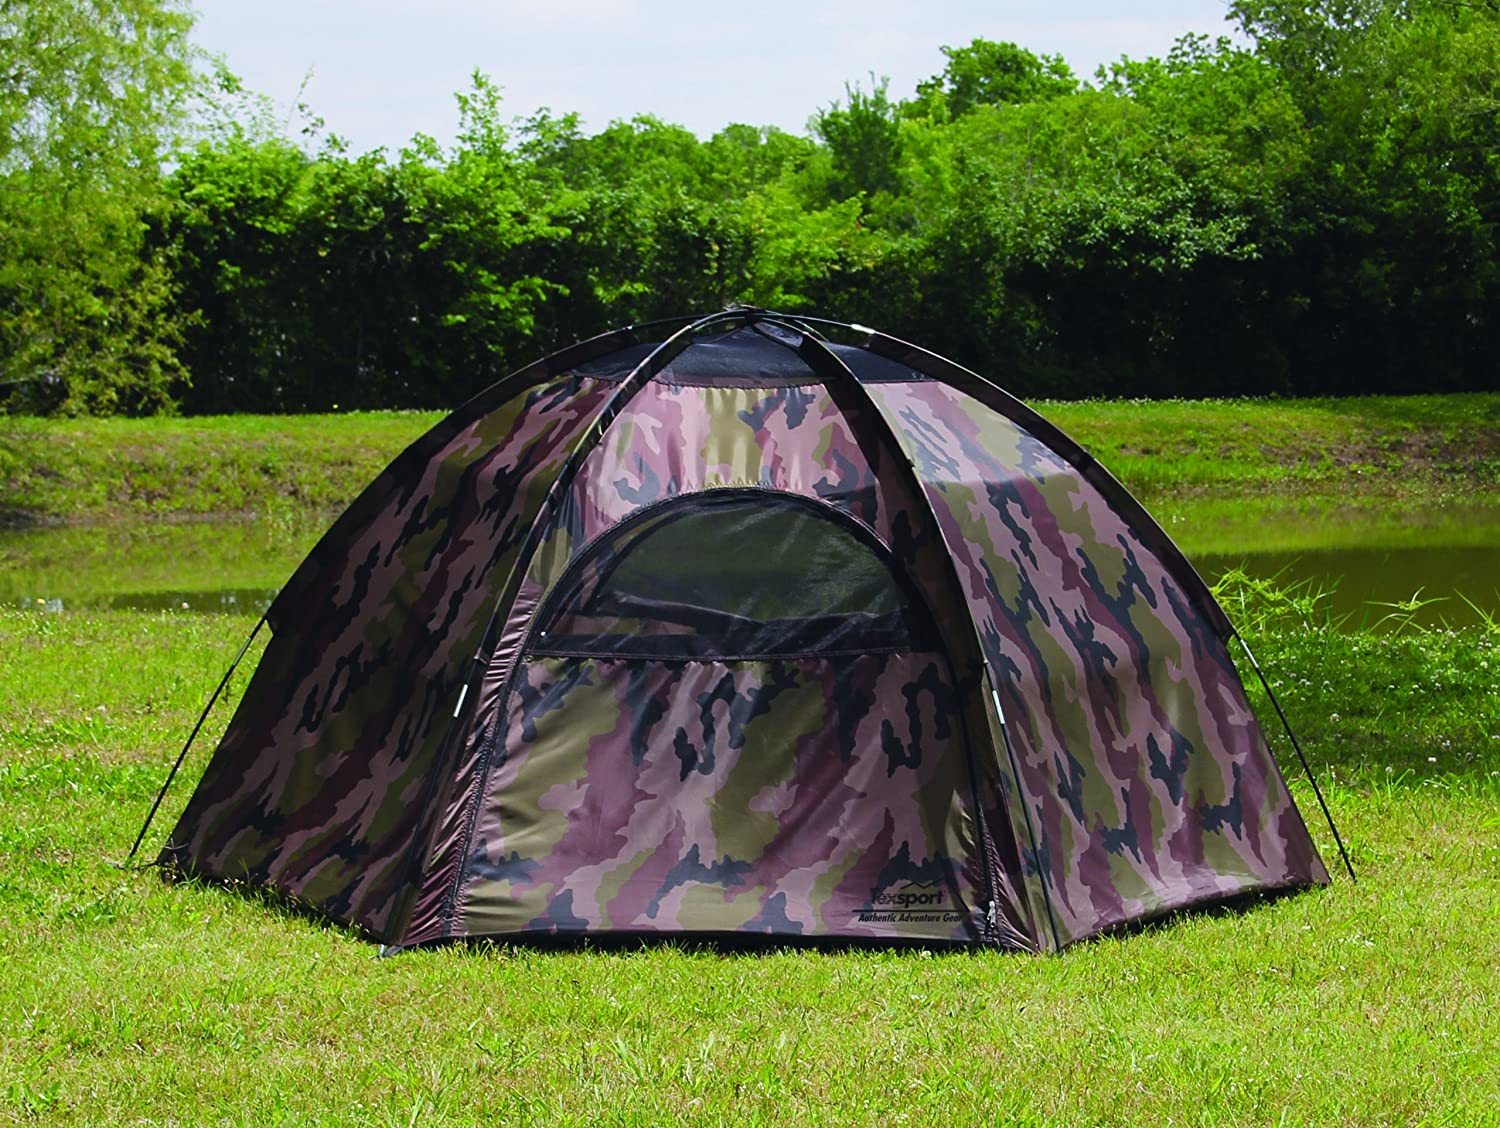 Amazon.com  Texsport 3 Person Hide-A-Way Camo Backpacking C&ing Tent with Carry Storage Bag  Camouflage Tents  Sports u0026 Outdoors & Amazon.com : Texsport 3 Person Hide-A-Way Camo Backpacking Camping ...